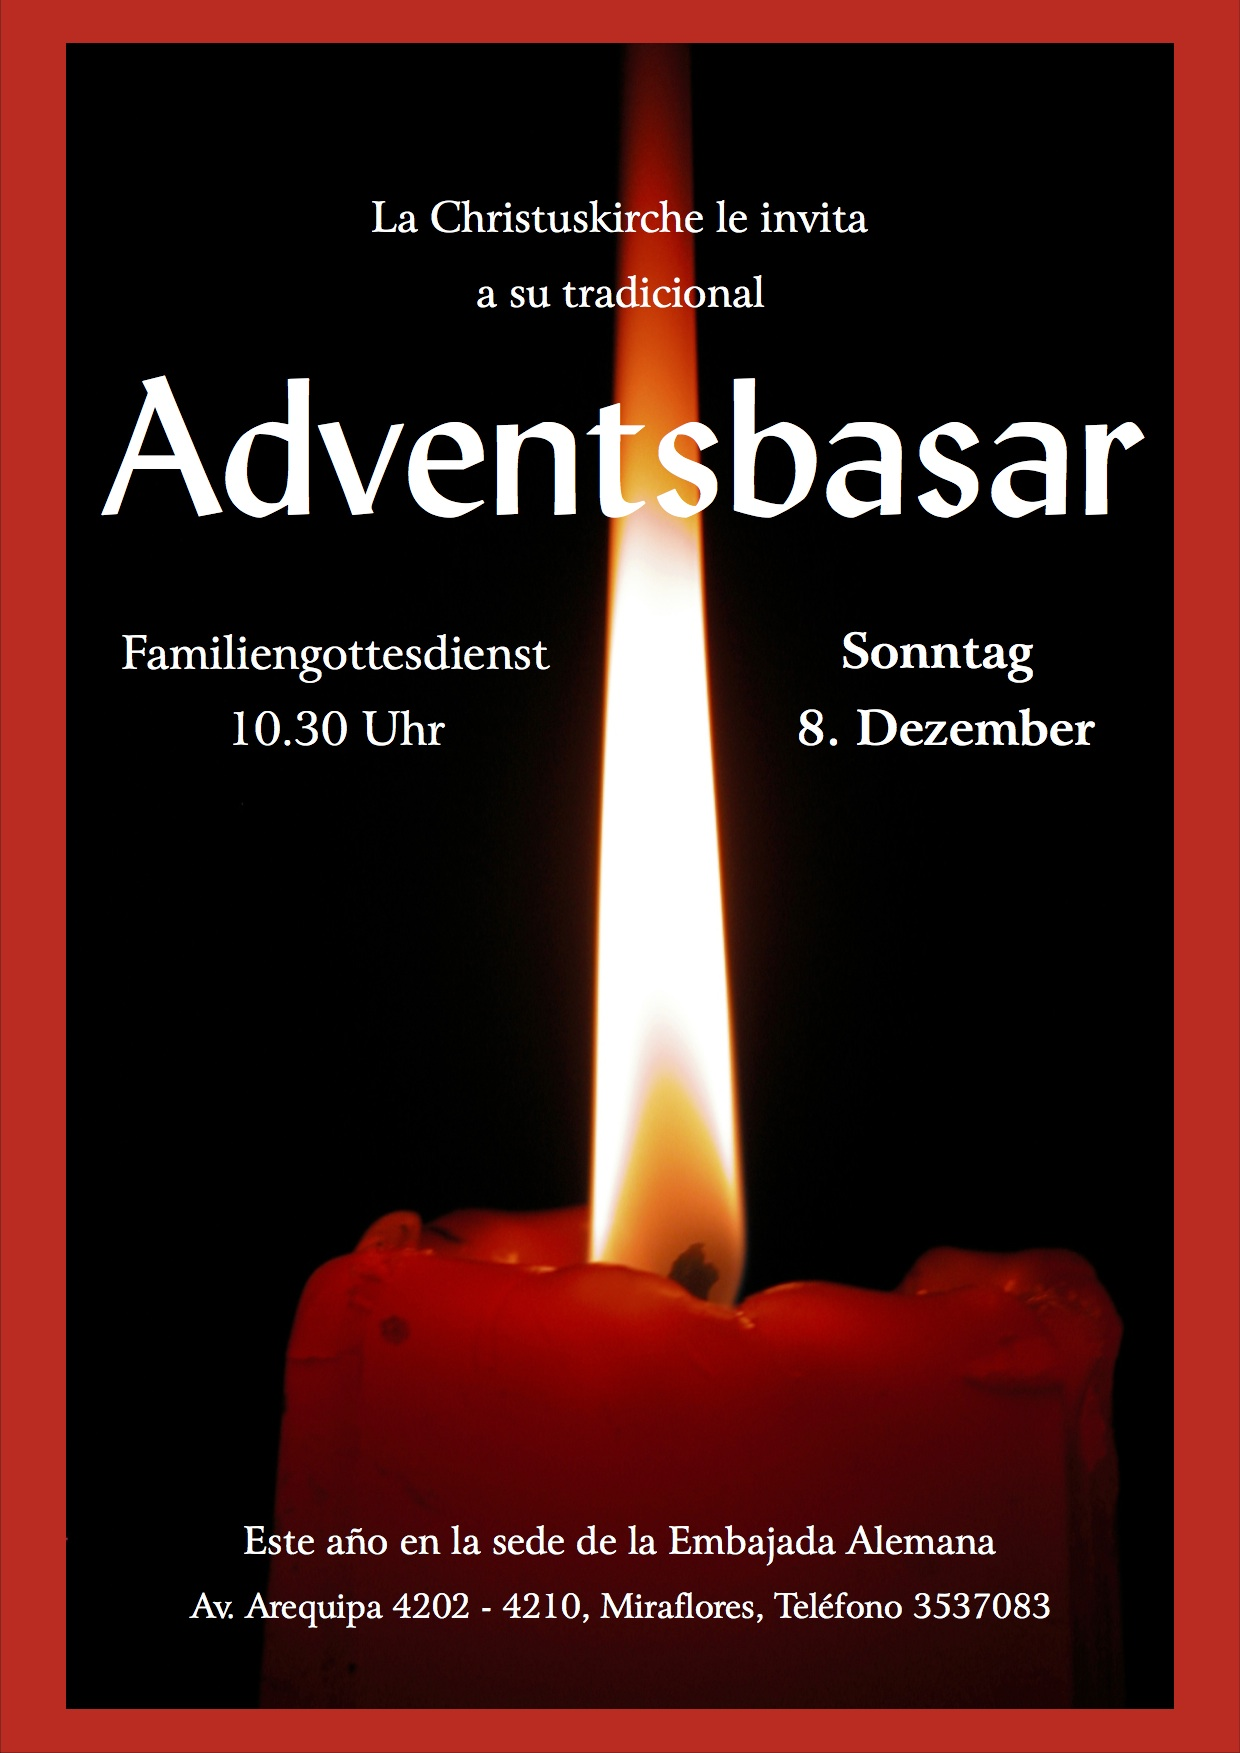 Adventsbasar2013